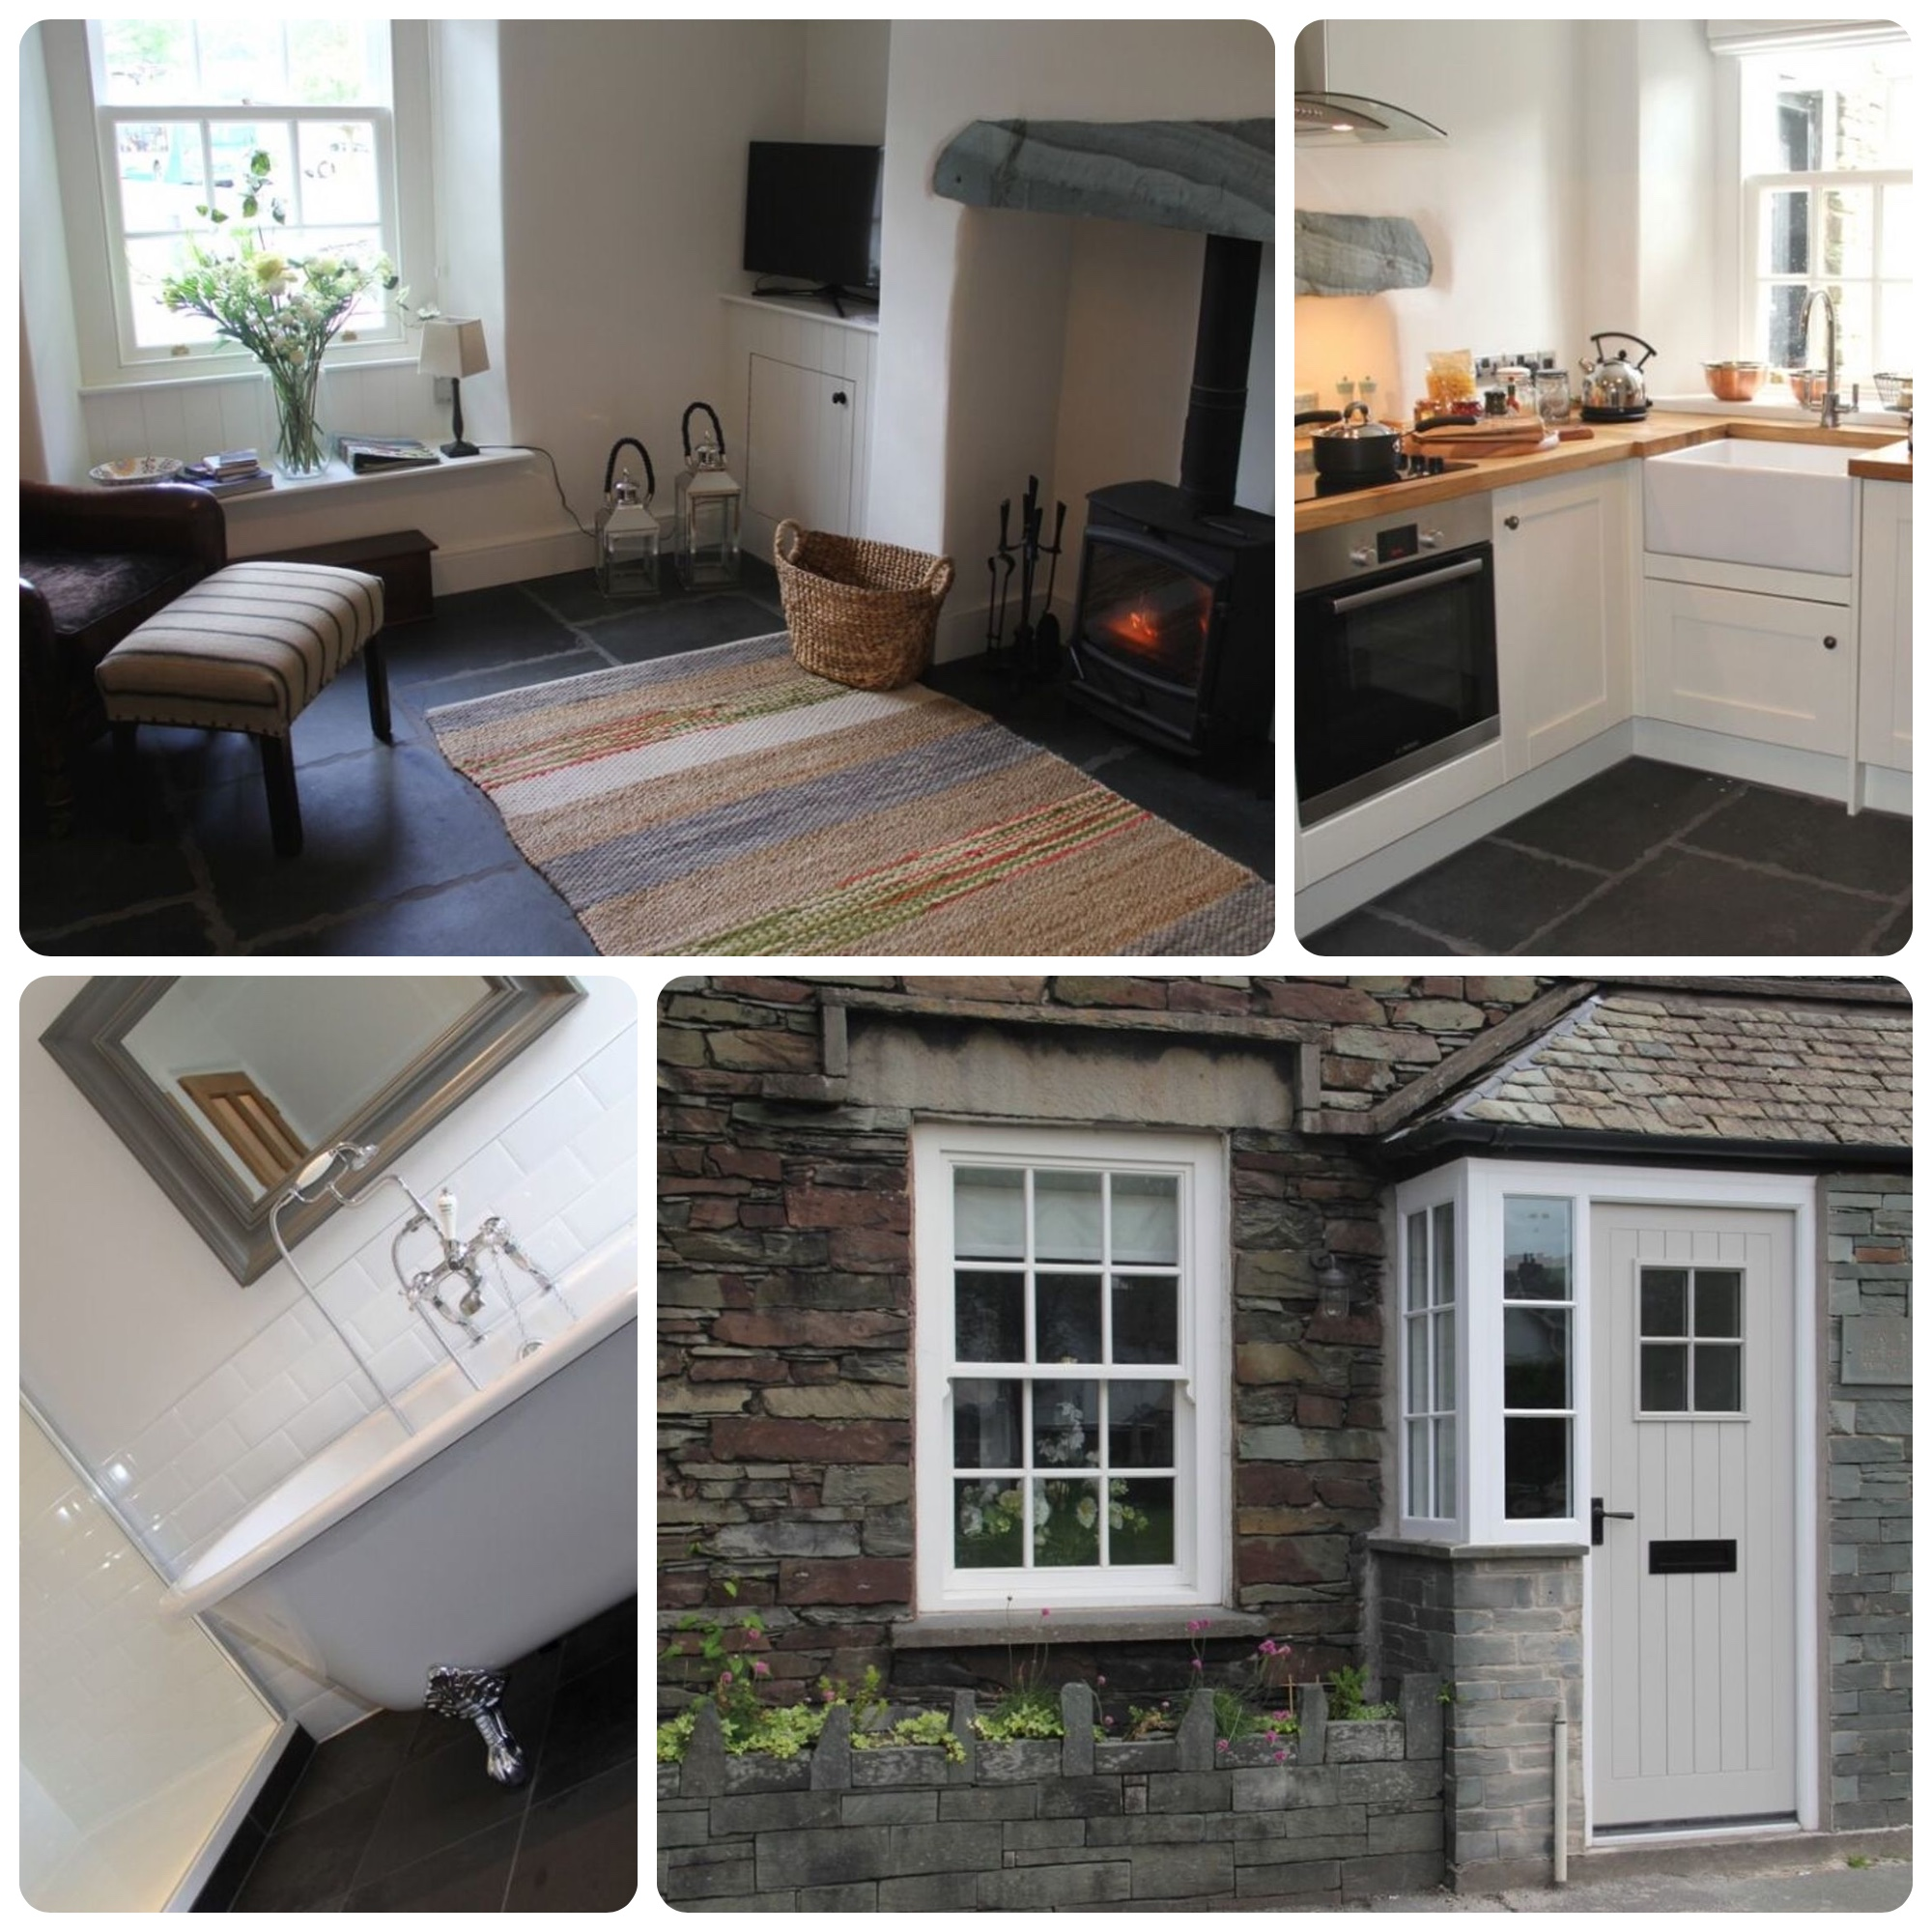 Traditional Lakeland Cottage right in the heart of the beautiful village of Grasmere. Previous guests have loved the style and quality of the interior furnishings too